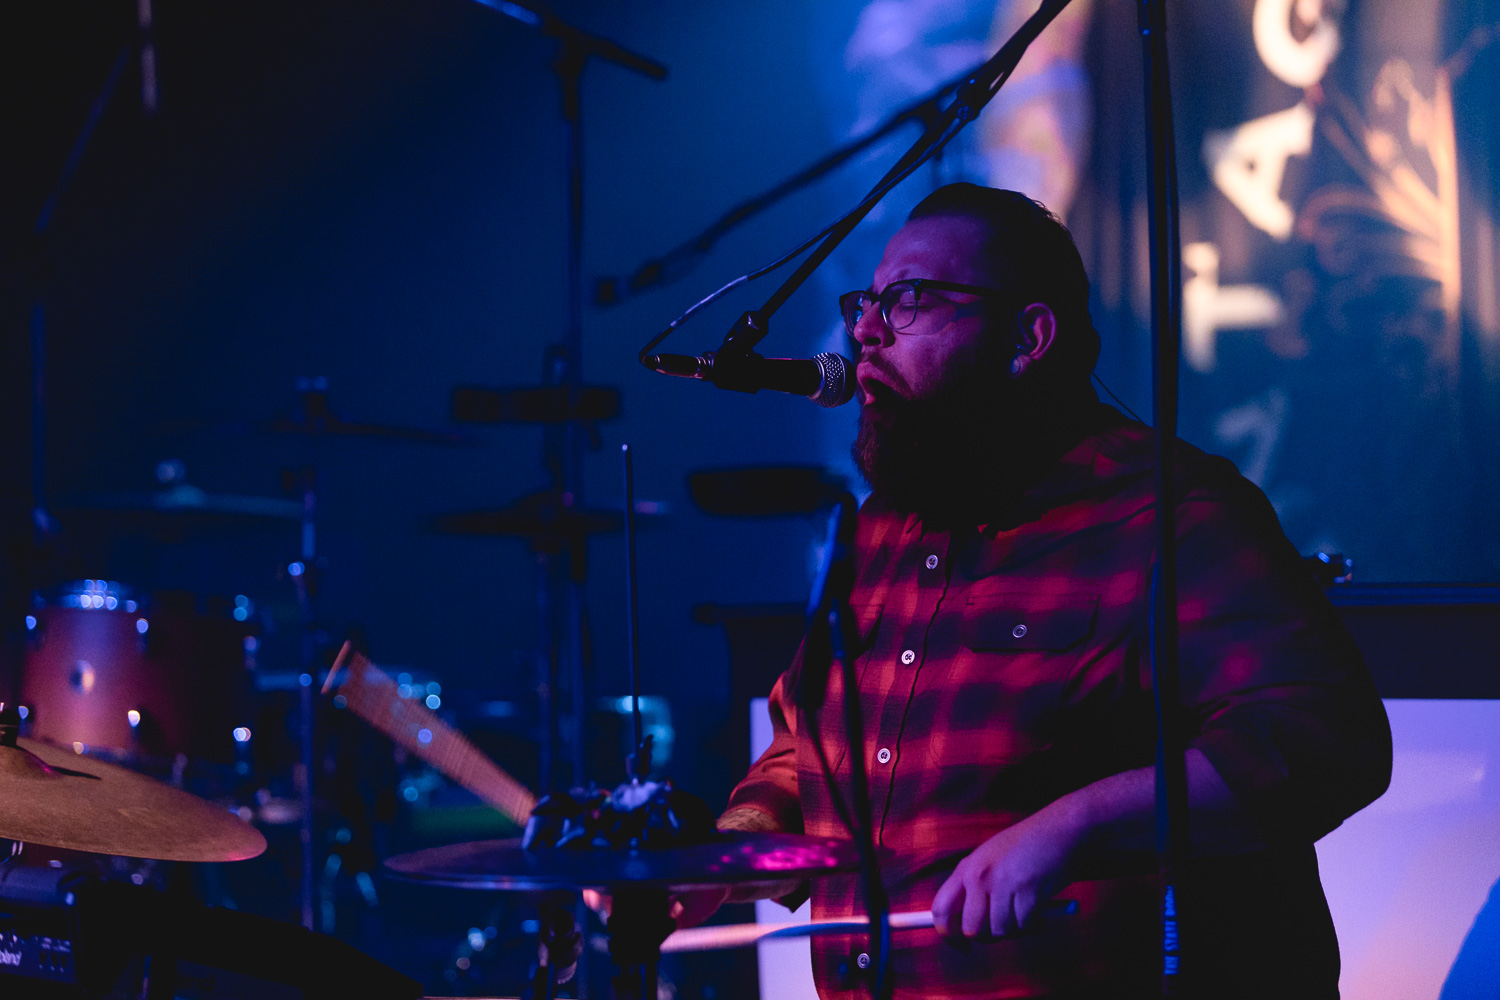 Drummer for Desi Valentine providing backup vocals. Photo: Lmsorenson.net